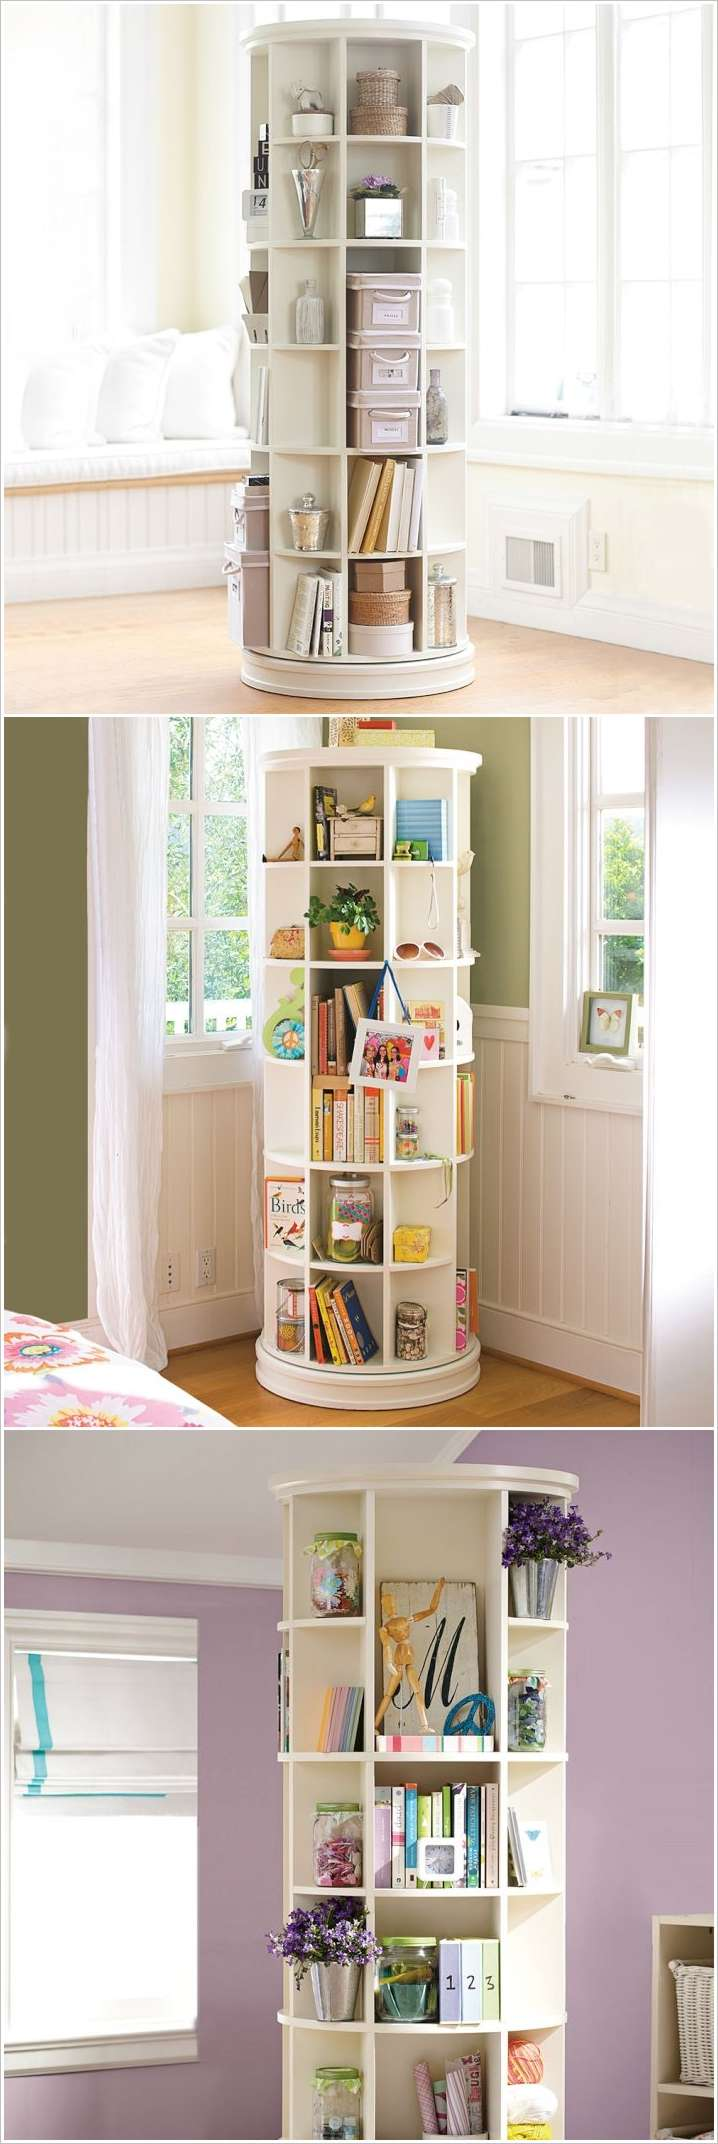 10 Clever Solutions for Small Space Teen Bedrooms on Small Teenage Bedroom Ideas  id=84776